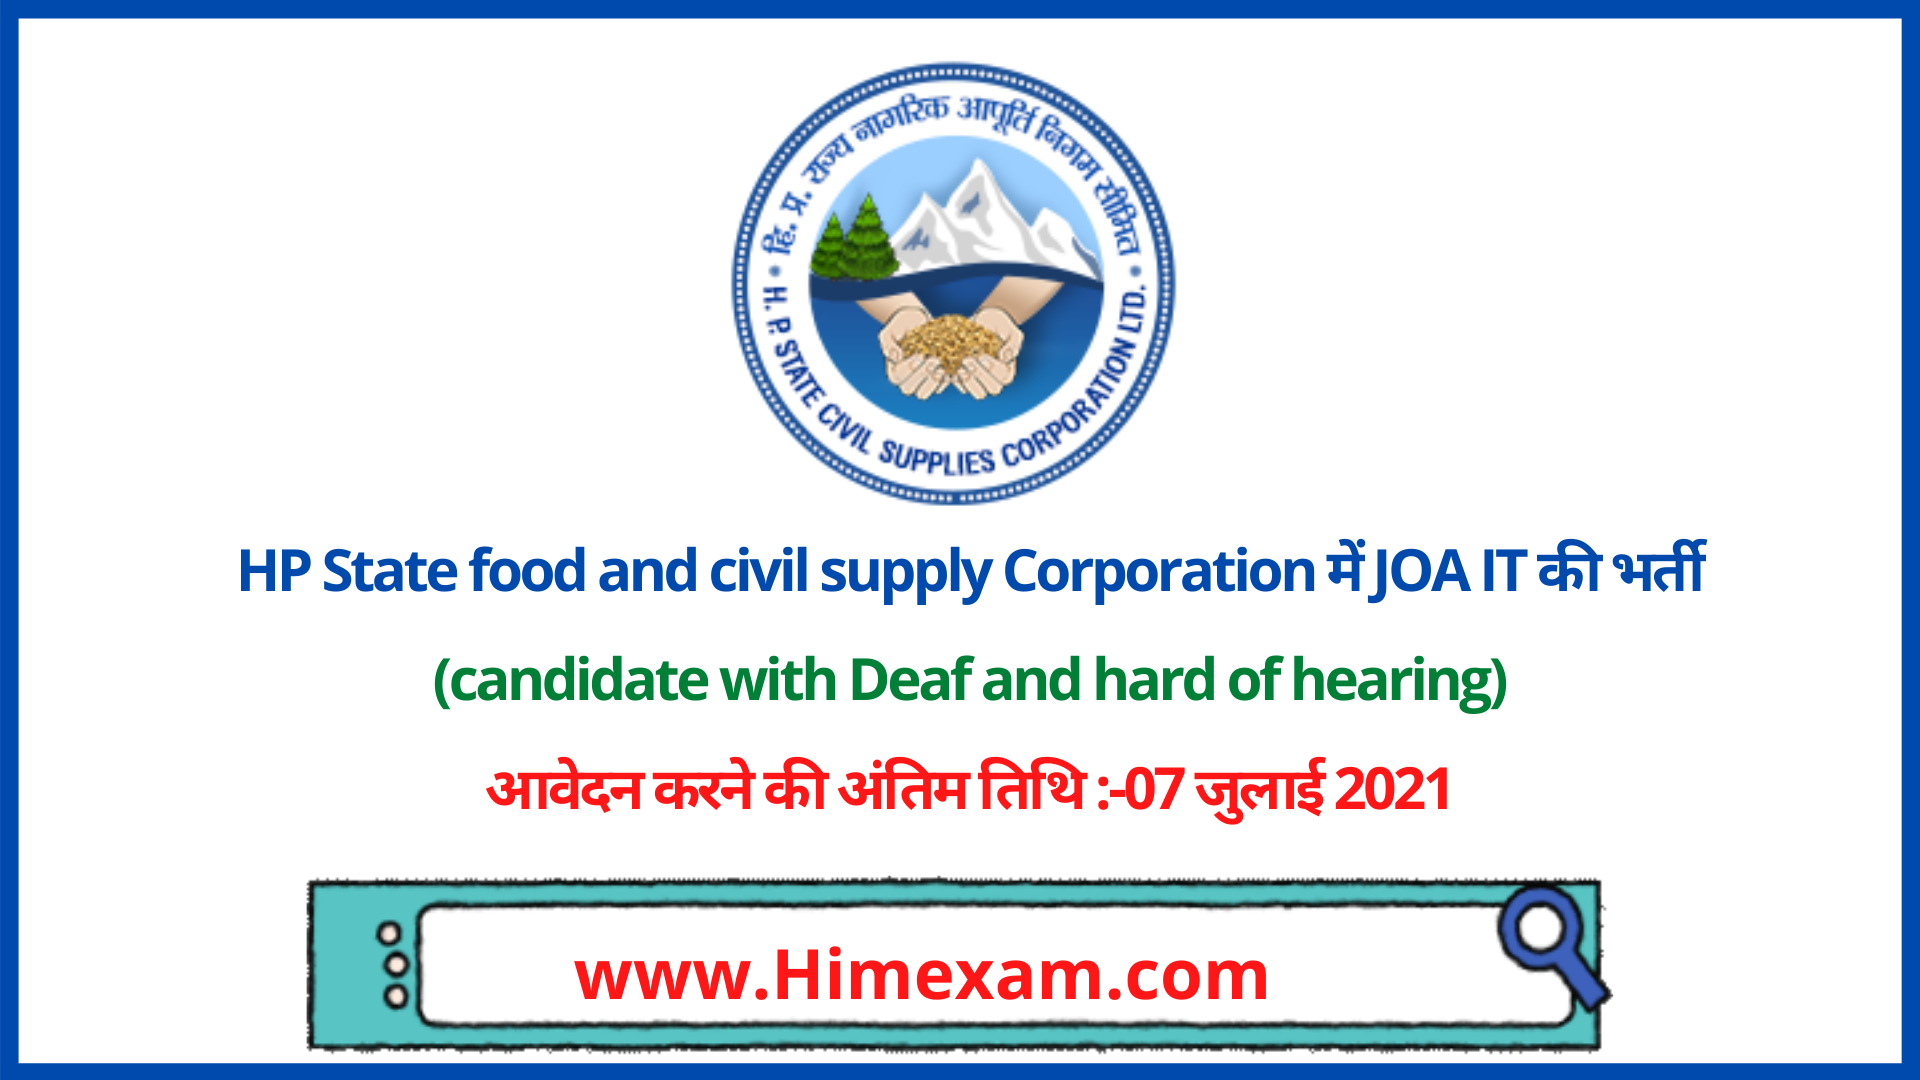 HP State  food and civil supply Corporation recruitment 2021-01 JOA IT Post